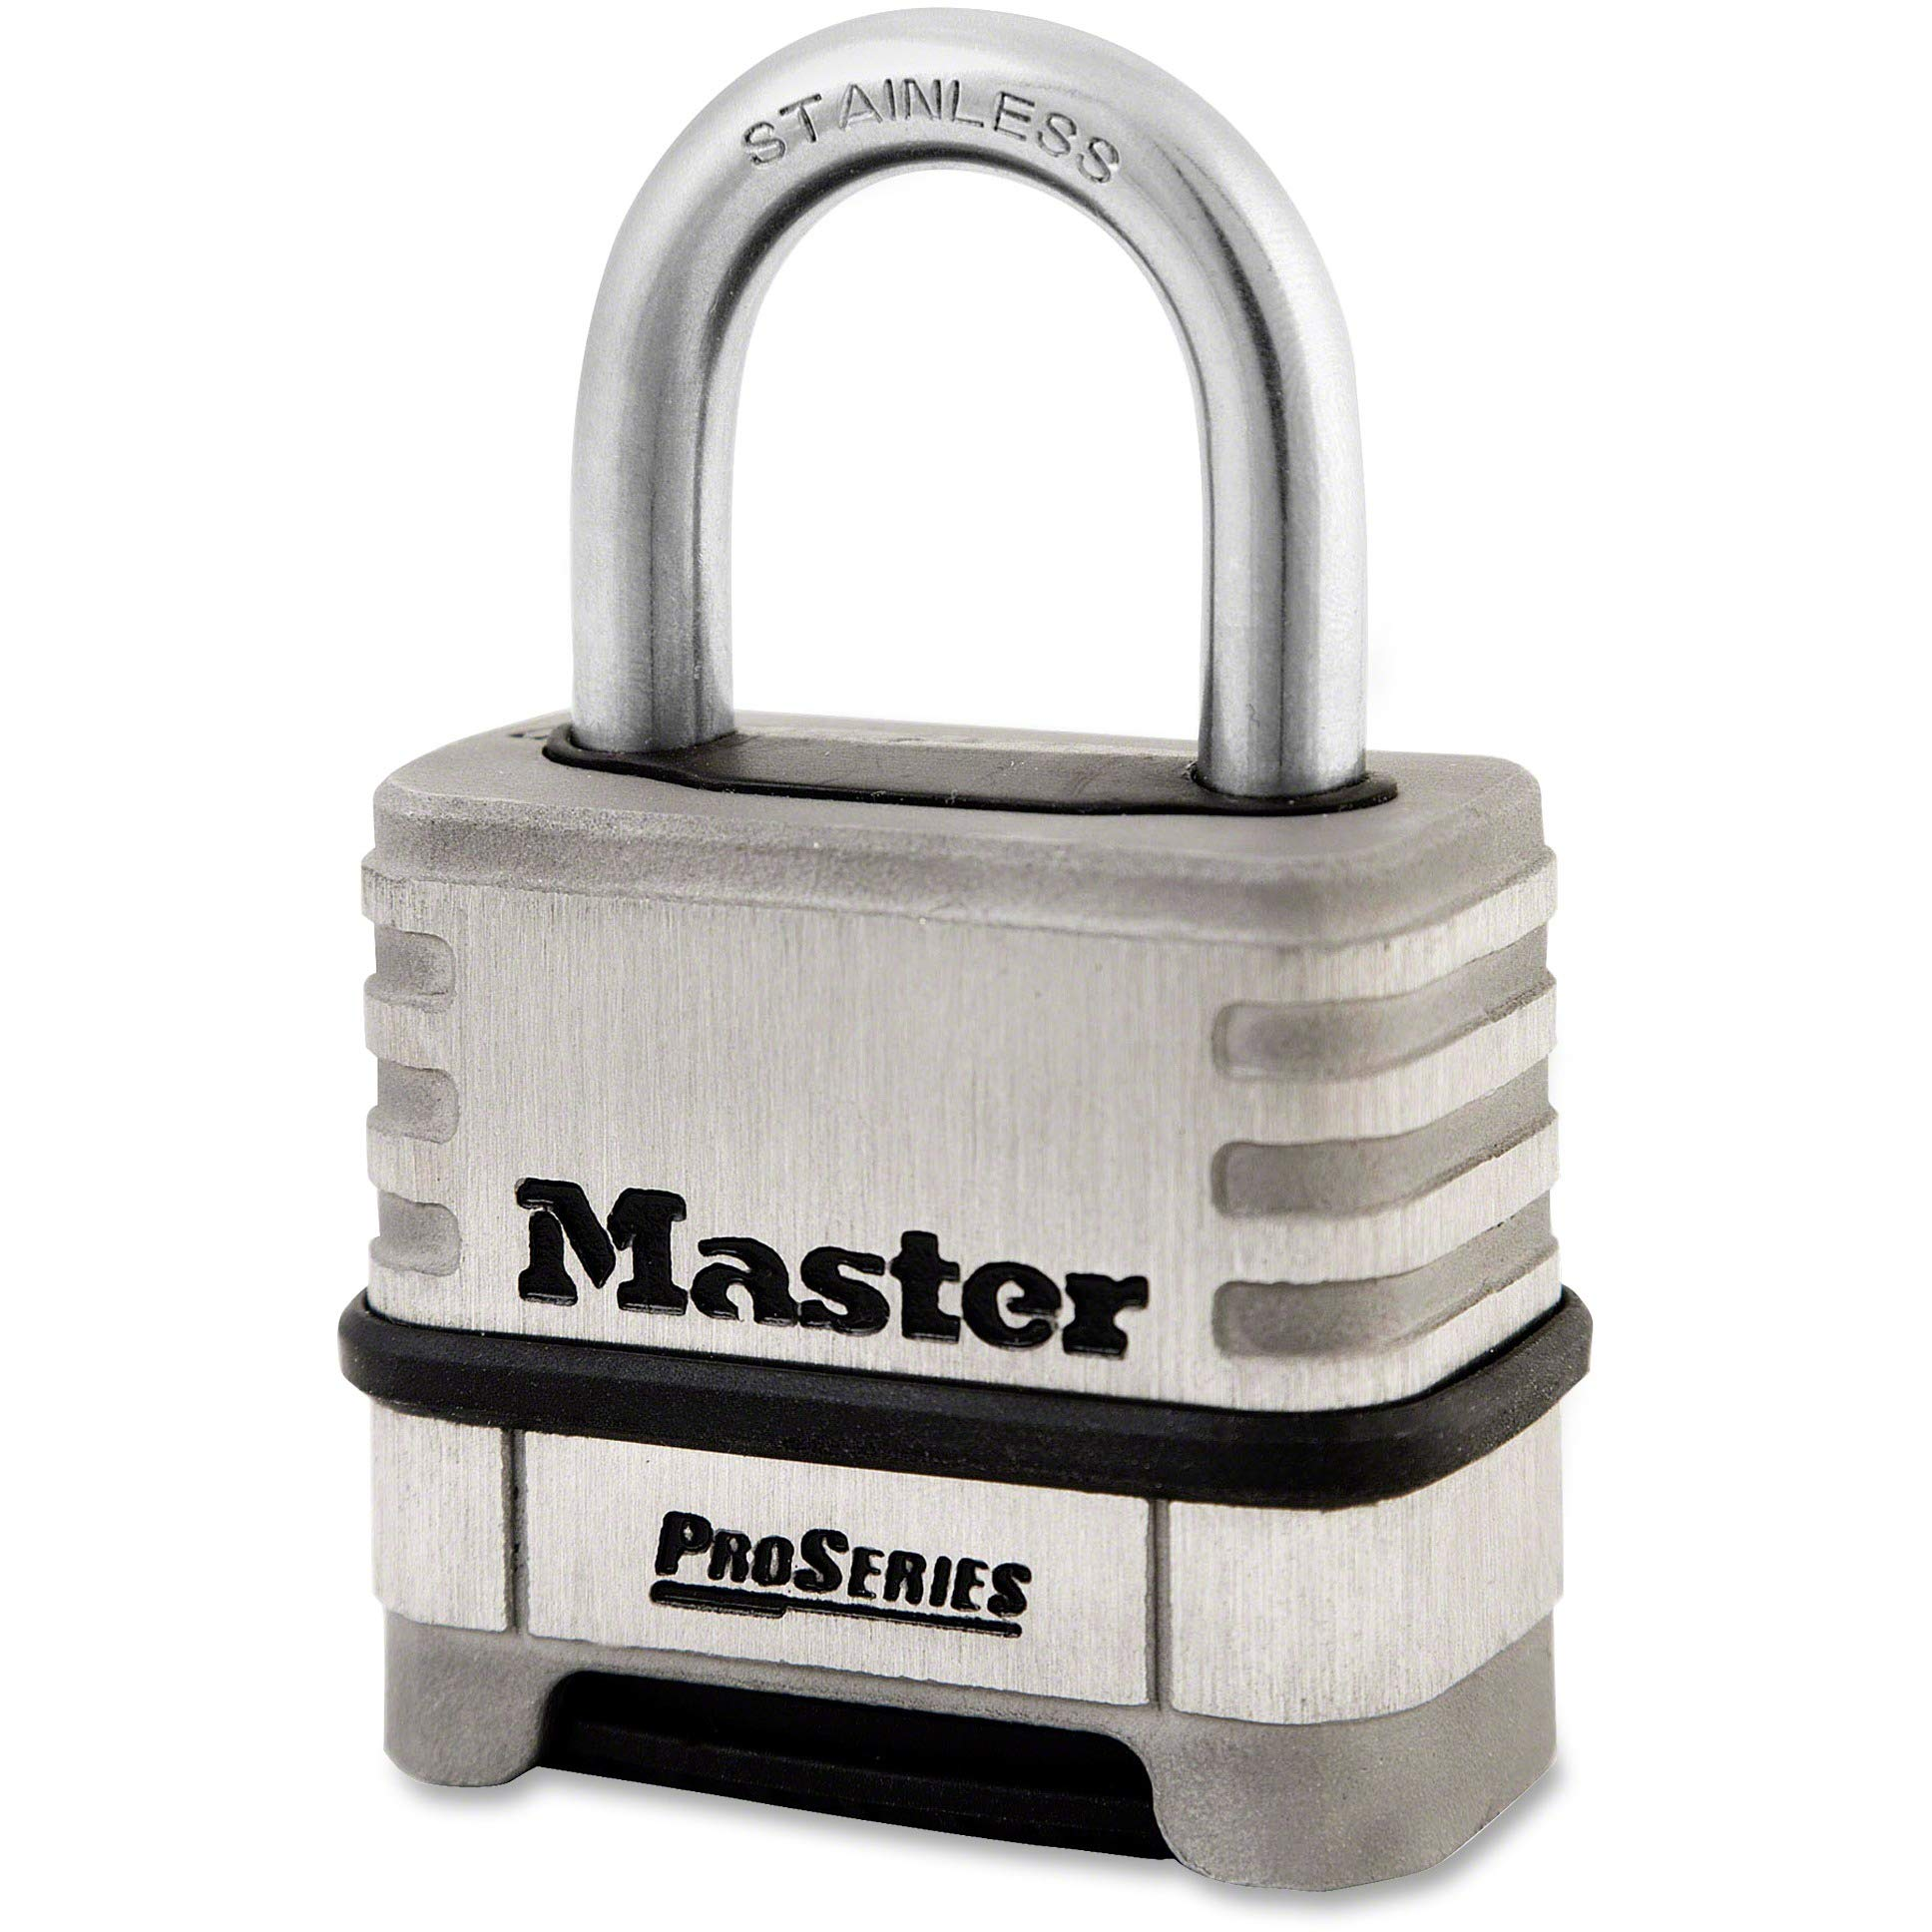 Master Lock ProSeries Stlss Steel Combo Lock (Stainless Steel)